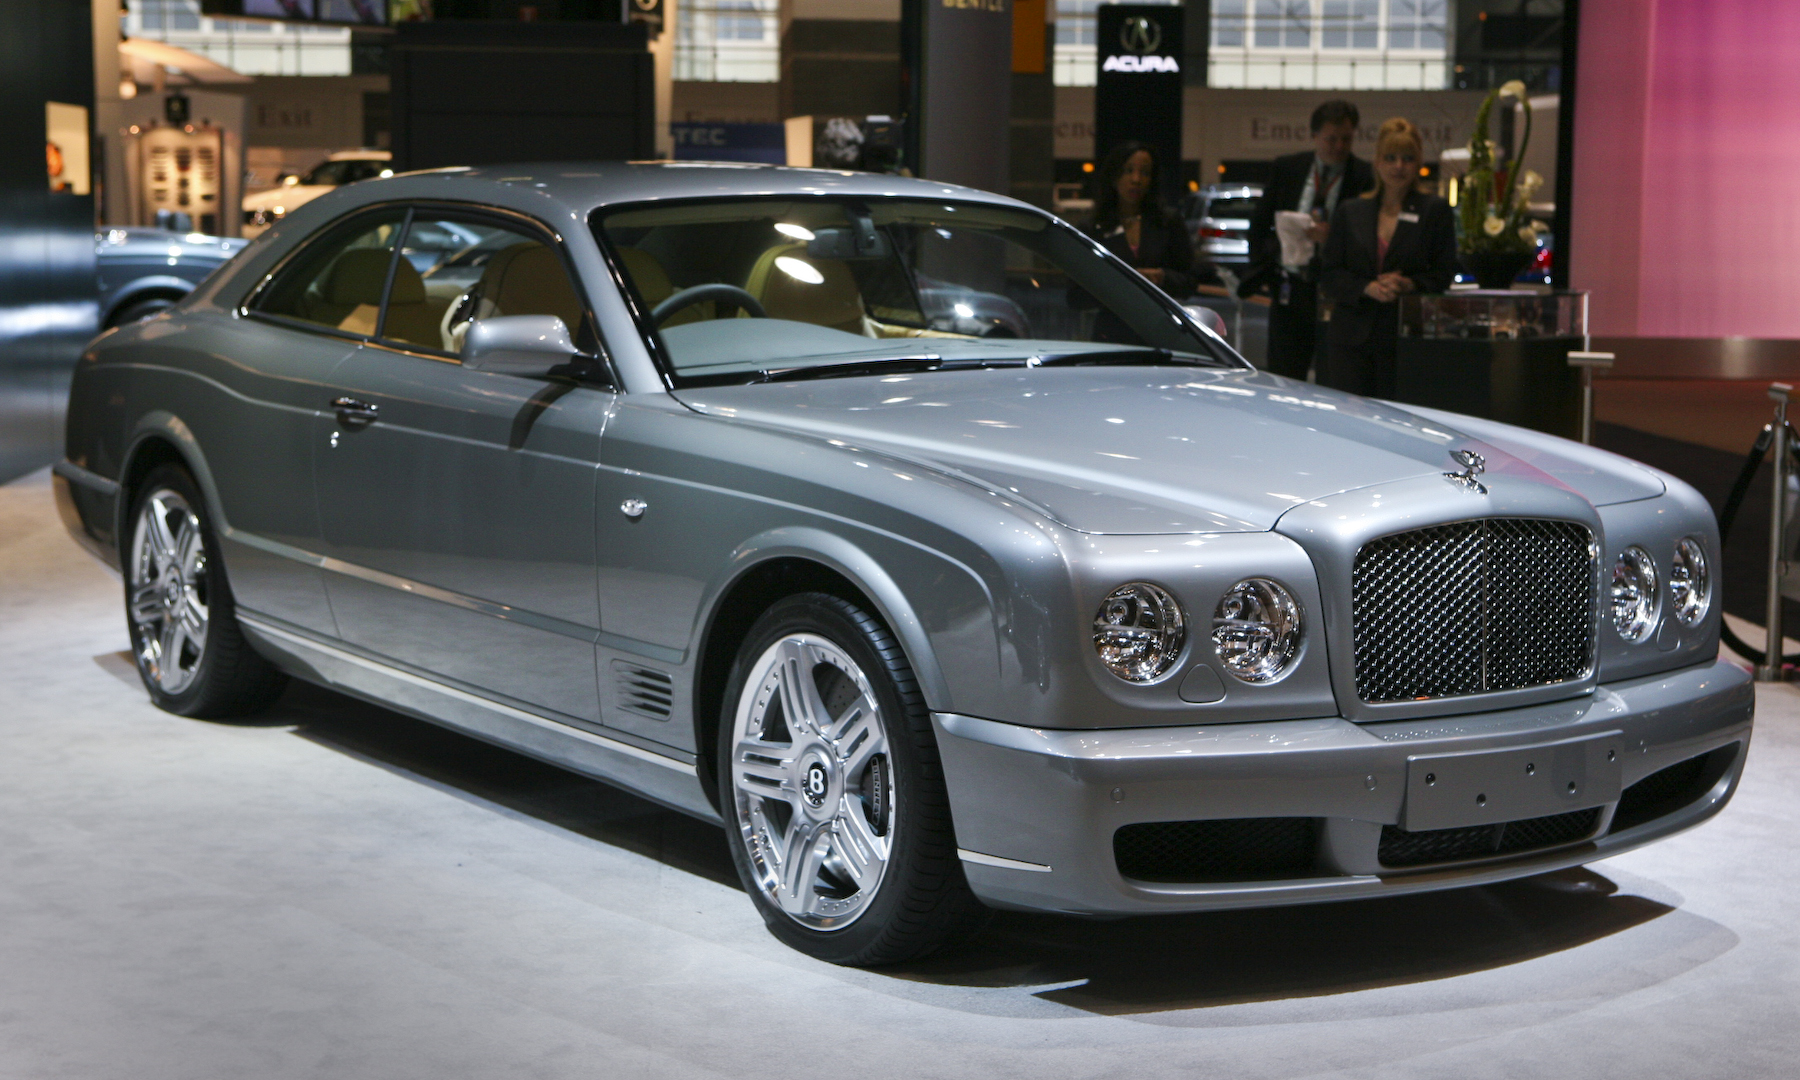 bentley specs review prices amp brooklands click cars image awesome new here price lovely of